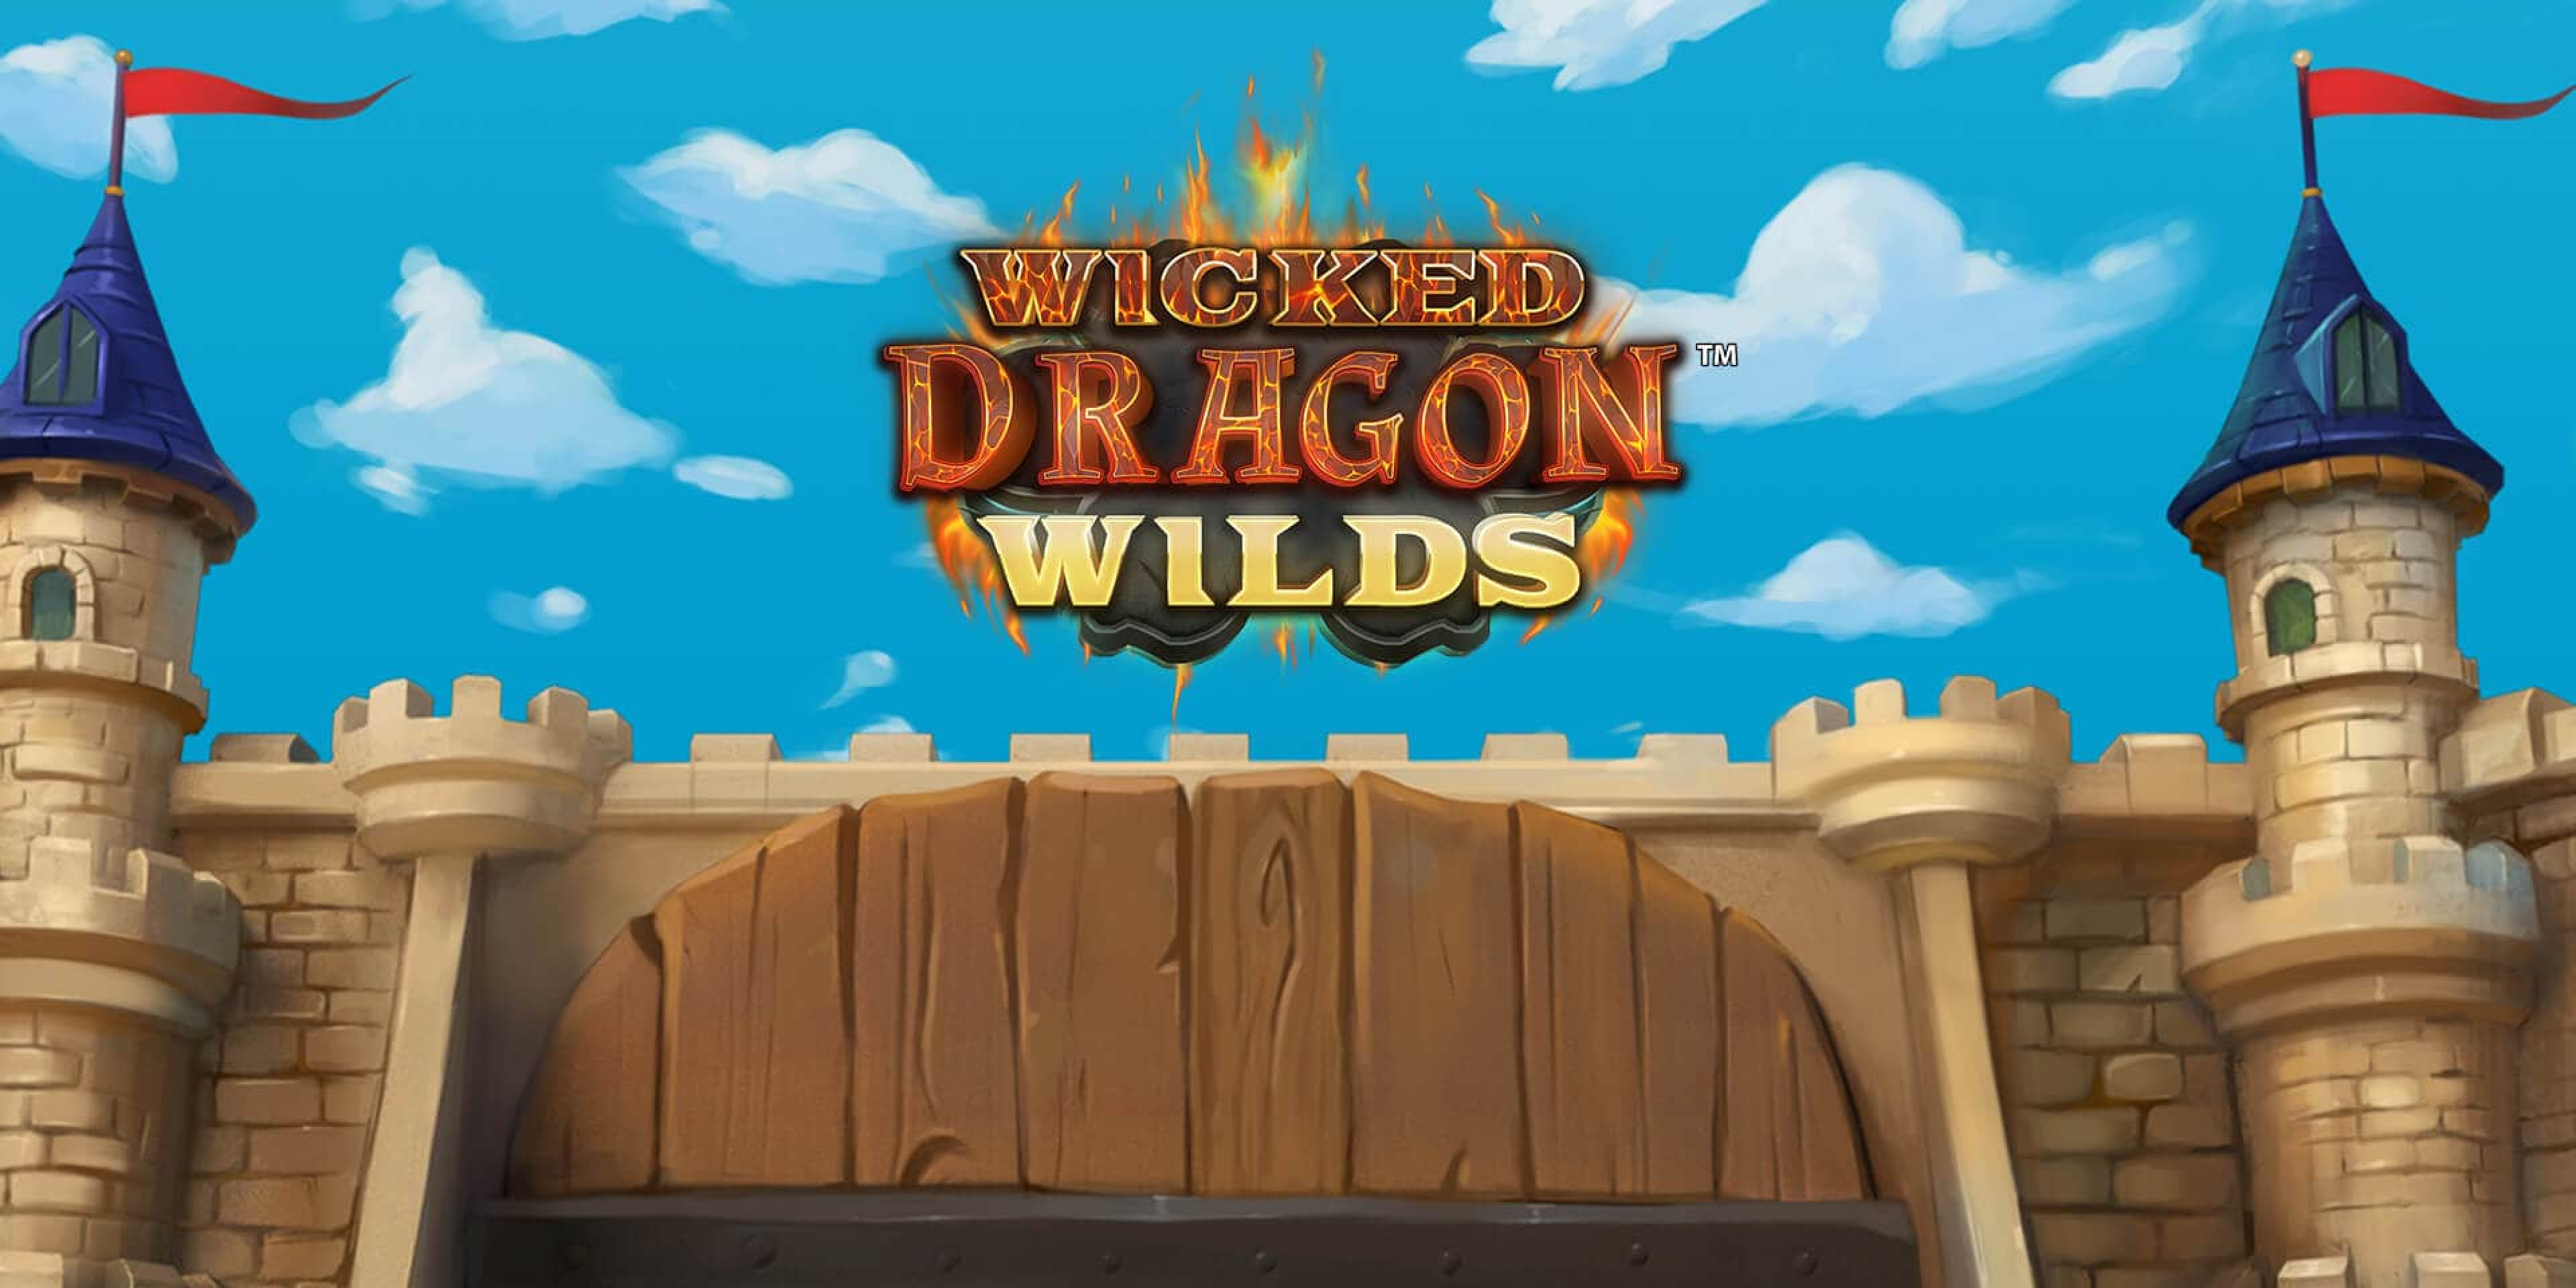 The Wicked Dragon Wilds Online Slot Demo Game by Red7 Mobile